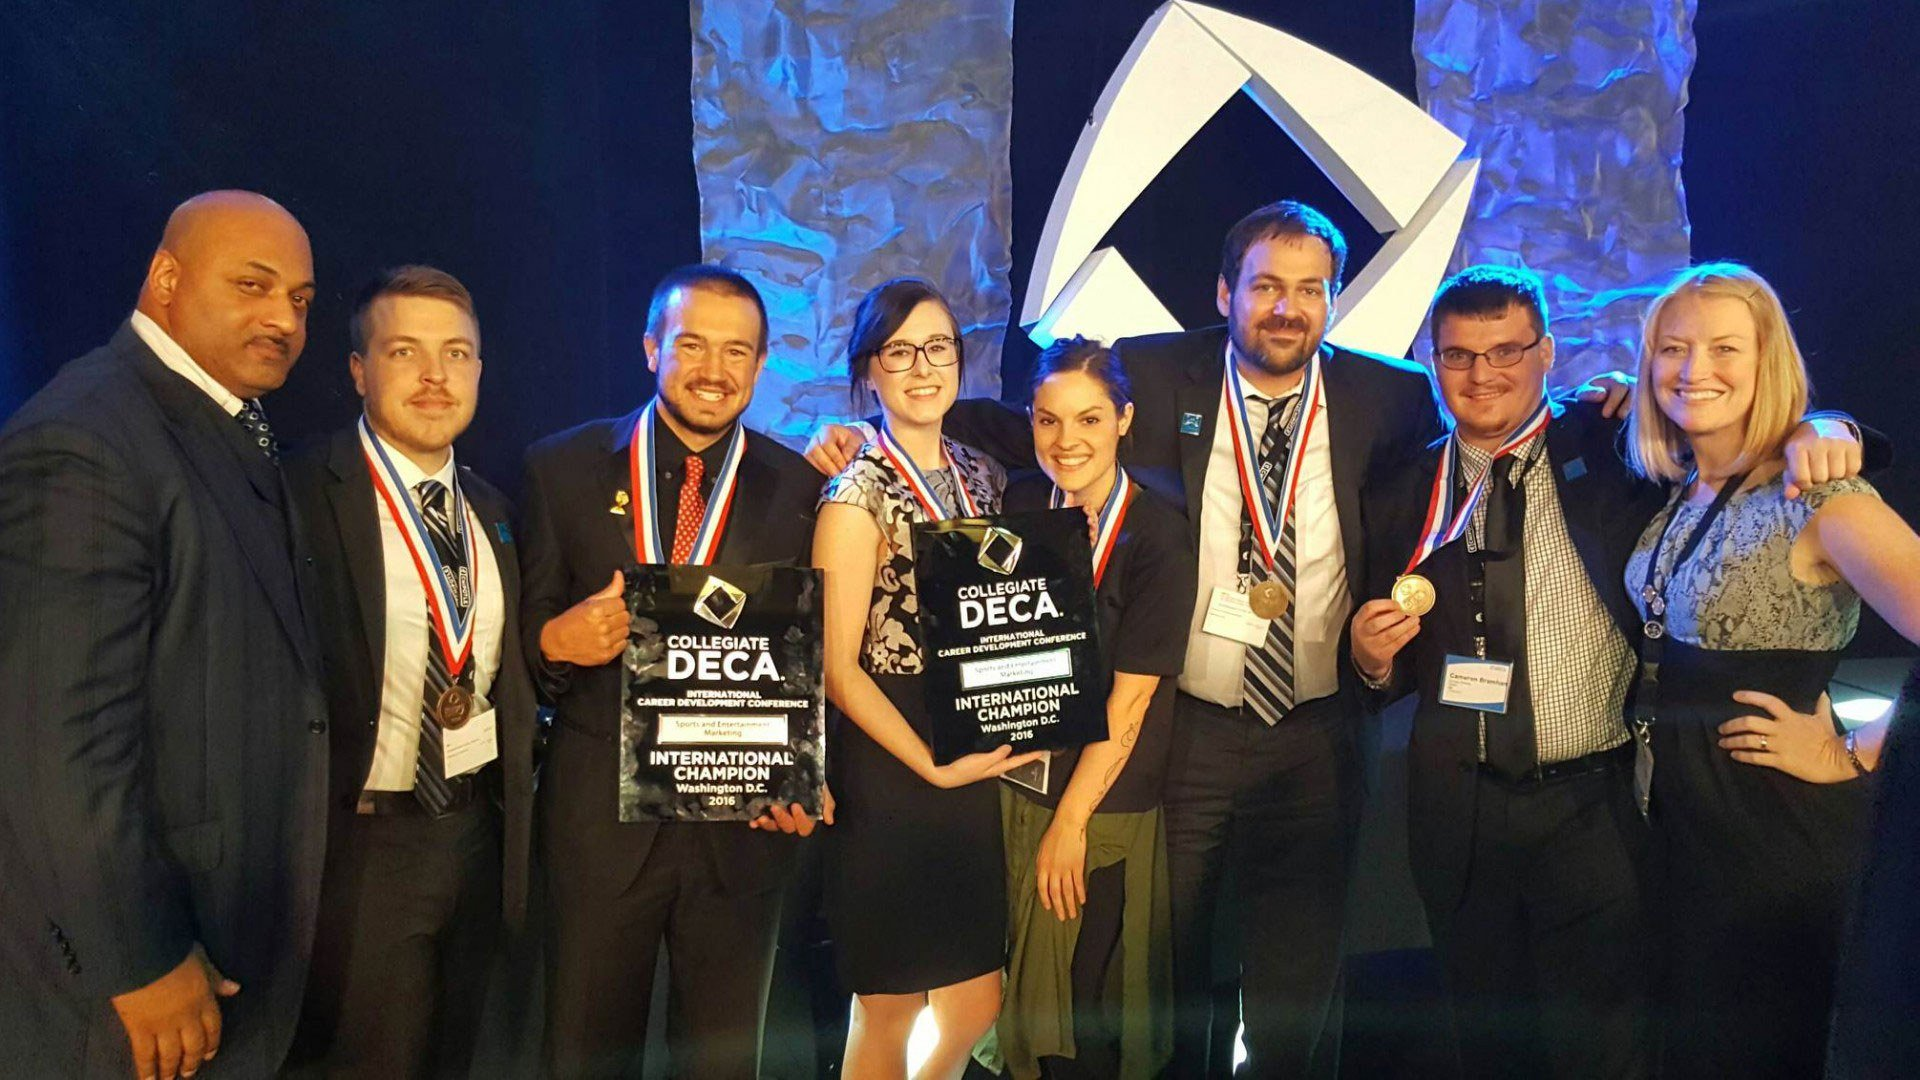 Students Finish in Top 10 at the 2016 International Collegiate DECA Competition - Hero image